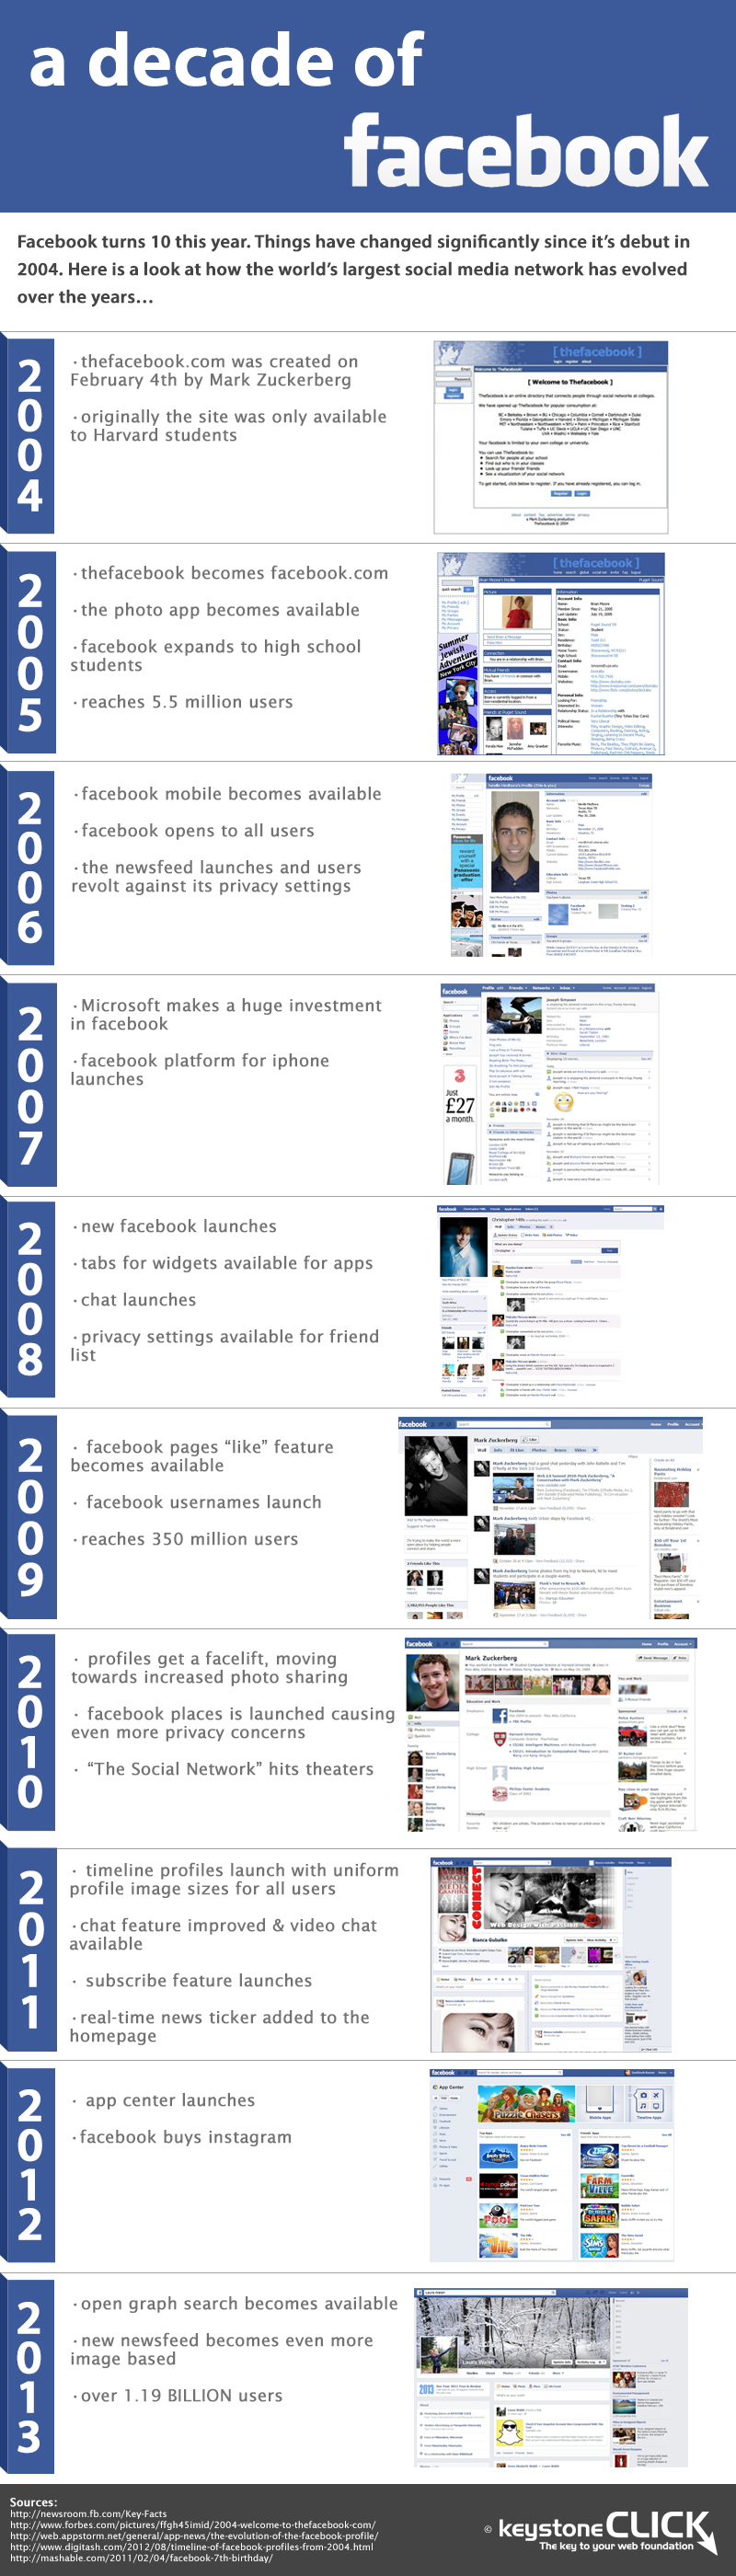 Facebook turns ten years old